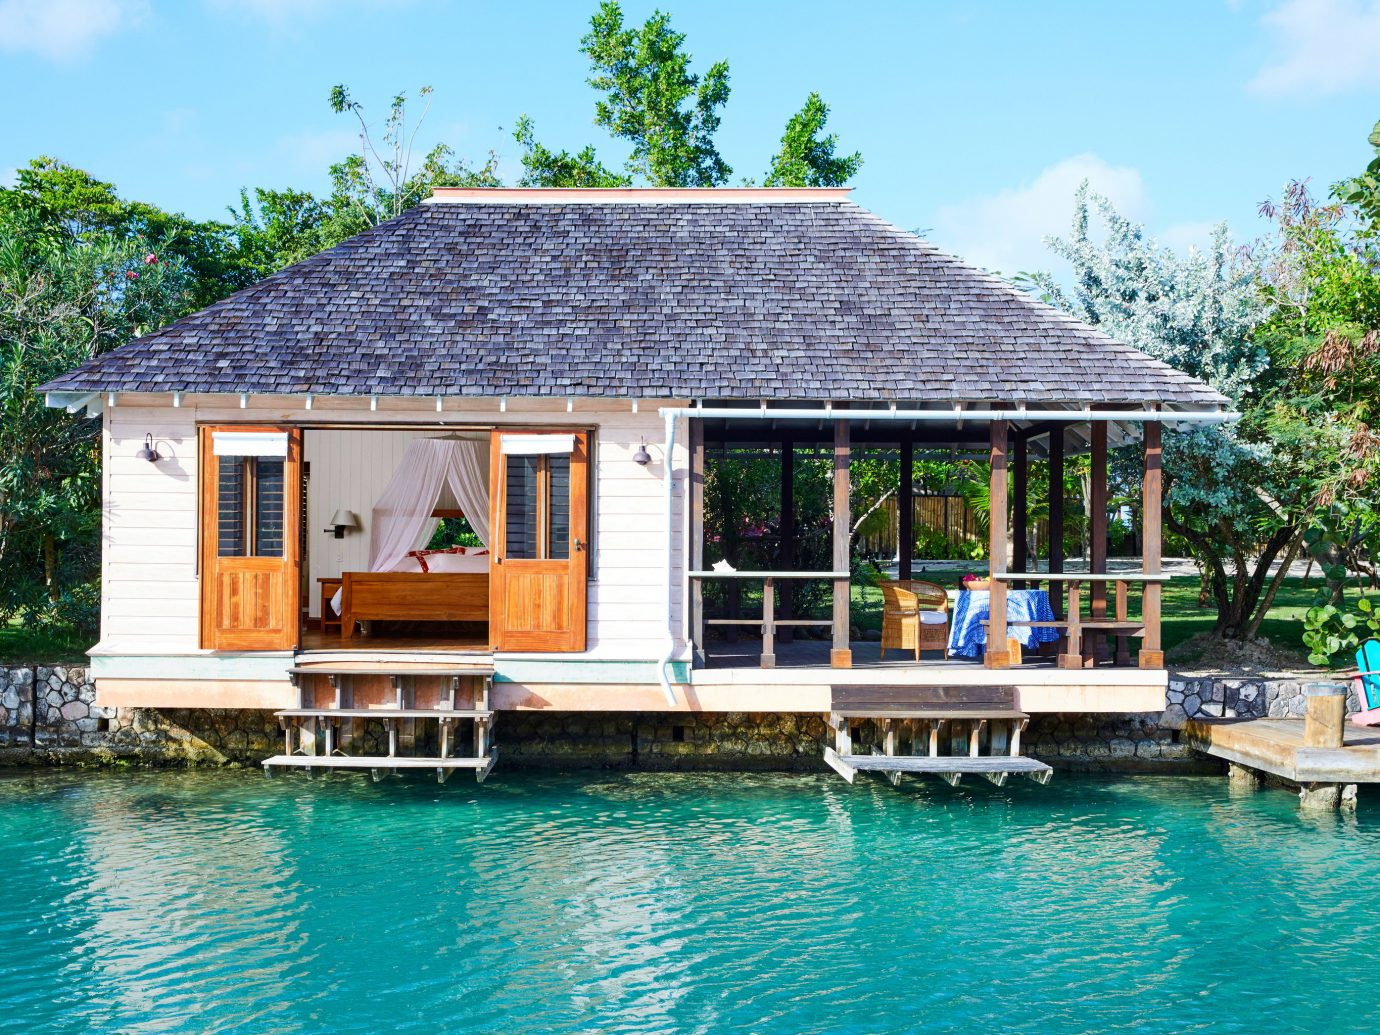 Trip Ideas outdoor sky water tree building house property Resort cottage swimming pool Villa real estate estate home leisure green outdoor structure gazebo surrounded